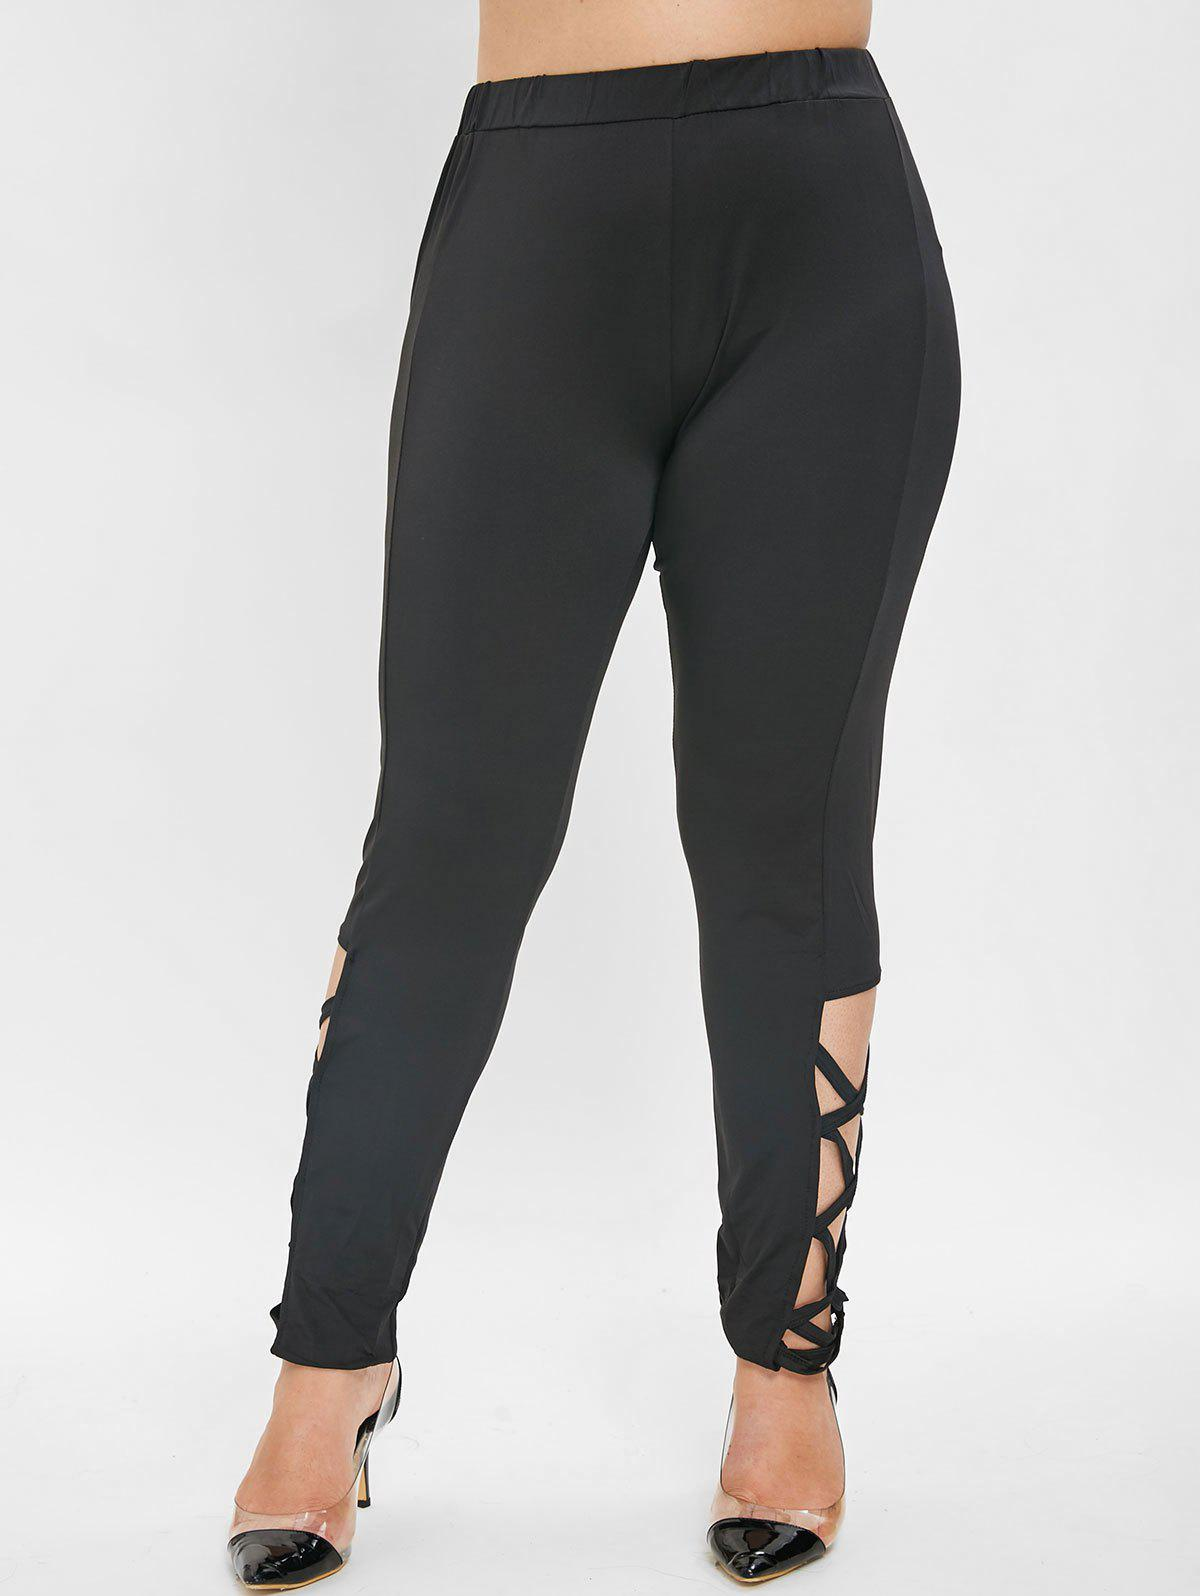 Trendy Side Criss Cross Plus Size Leggings